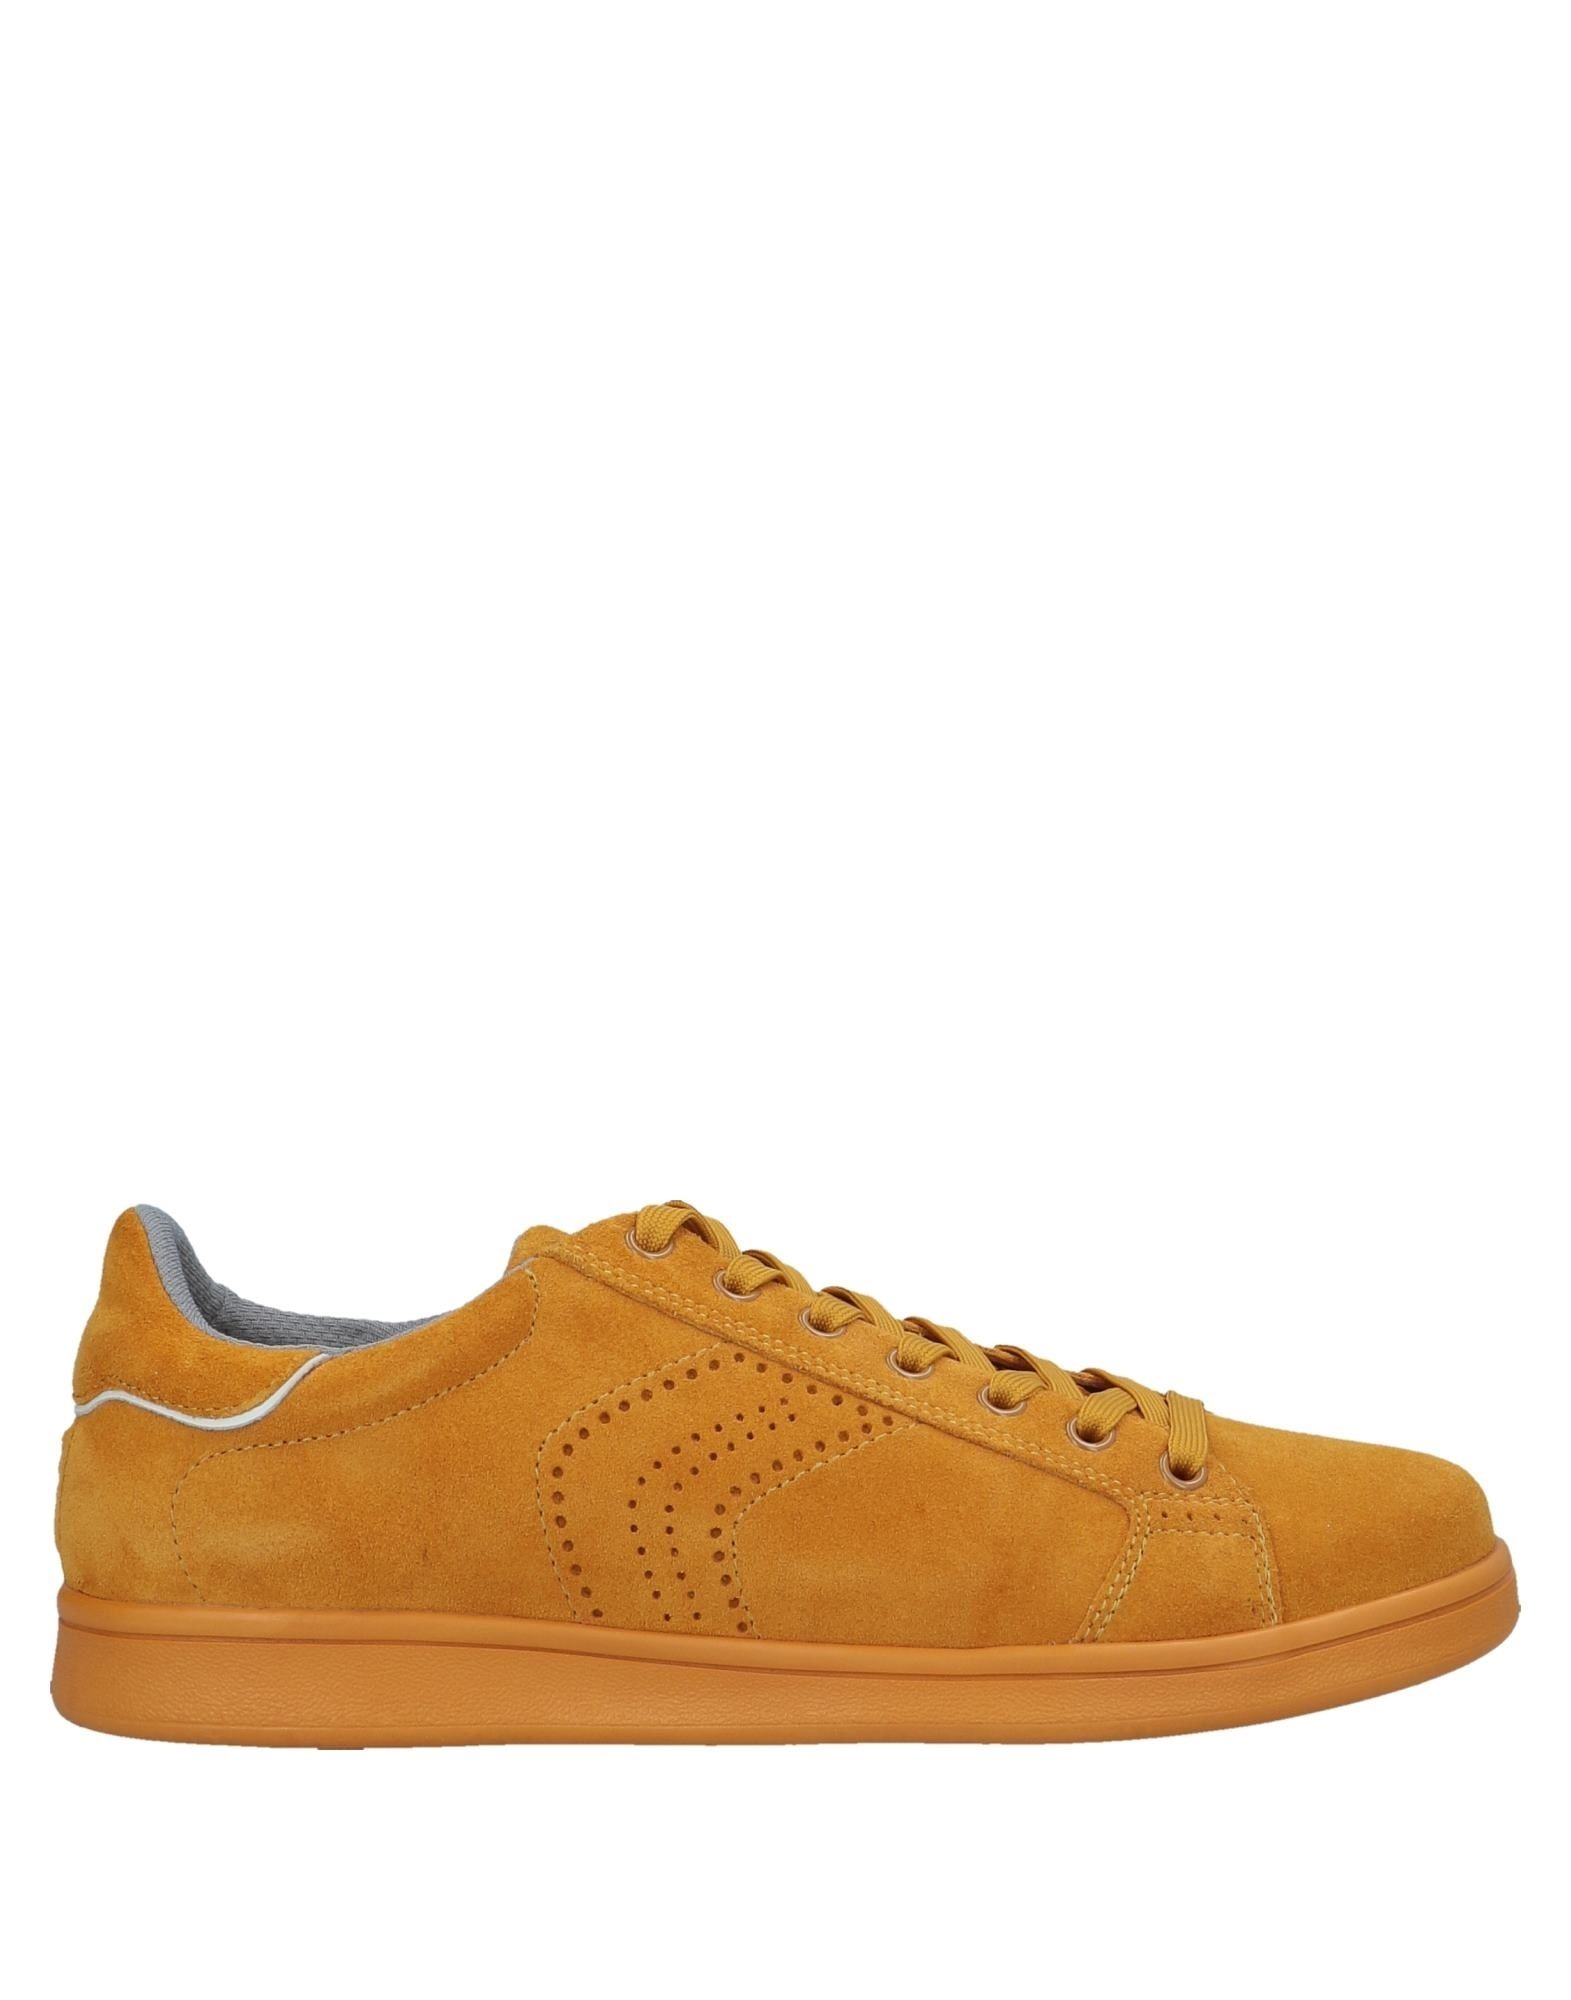 Sneakers Geox Homme - Sneakers Geox  Jaune Chaussures femme pas cher homme et femme